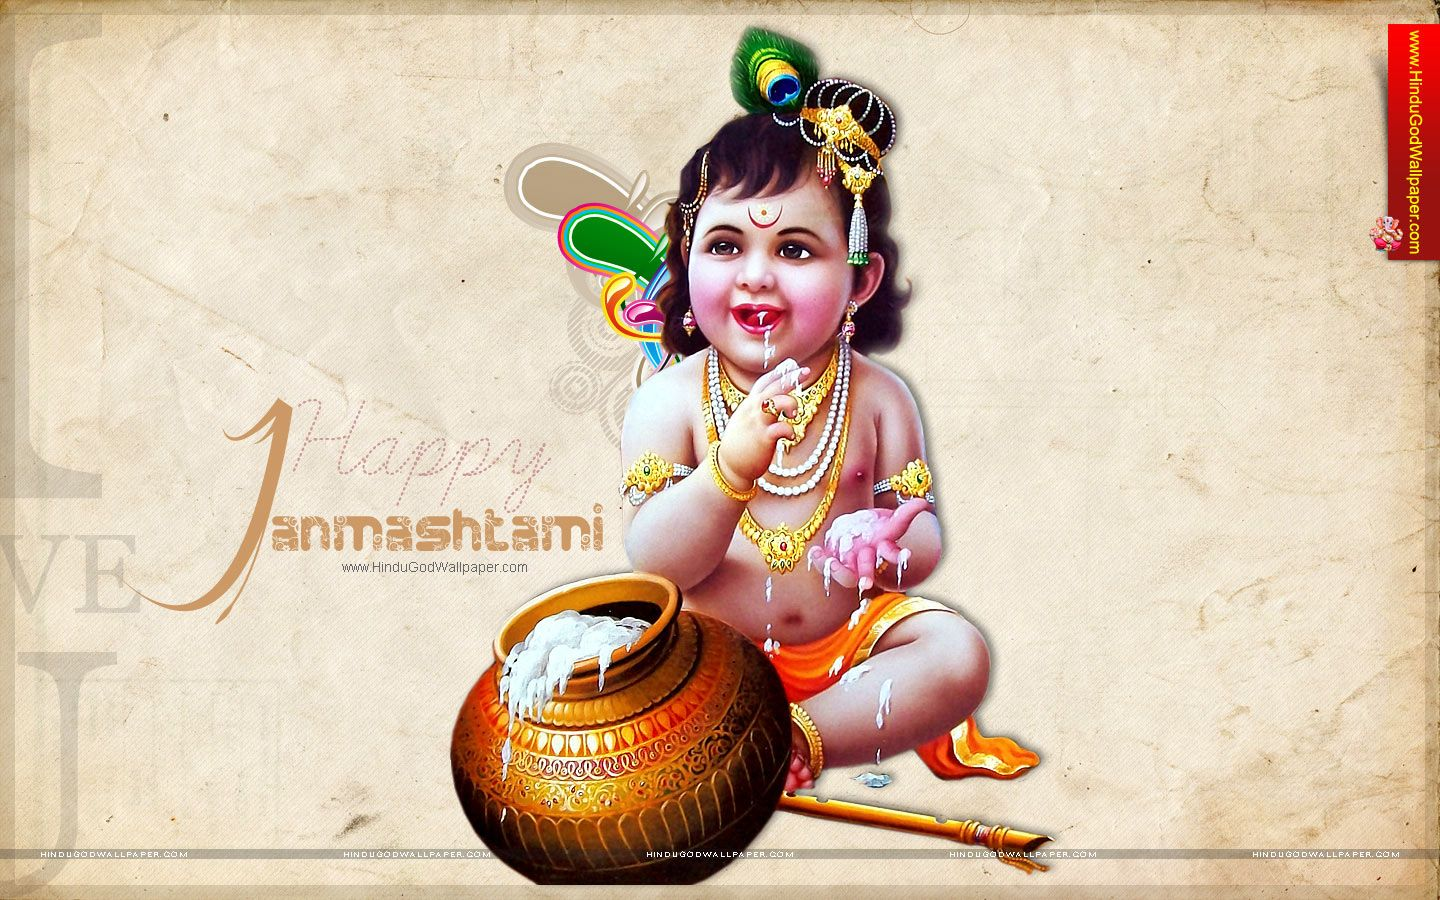 Krishna Janmashtami Hd Wallpapers And Images Download Happy Janmashtami Krishna Janmashtami Janmashtami Wallpapers